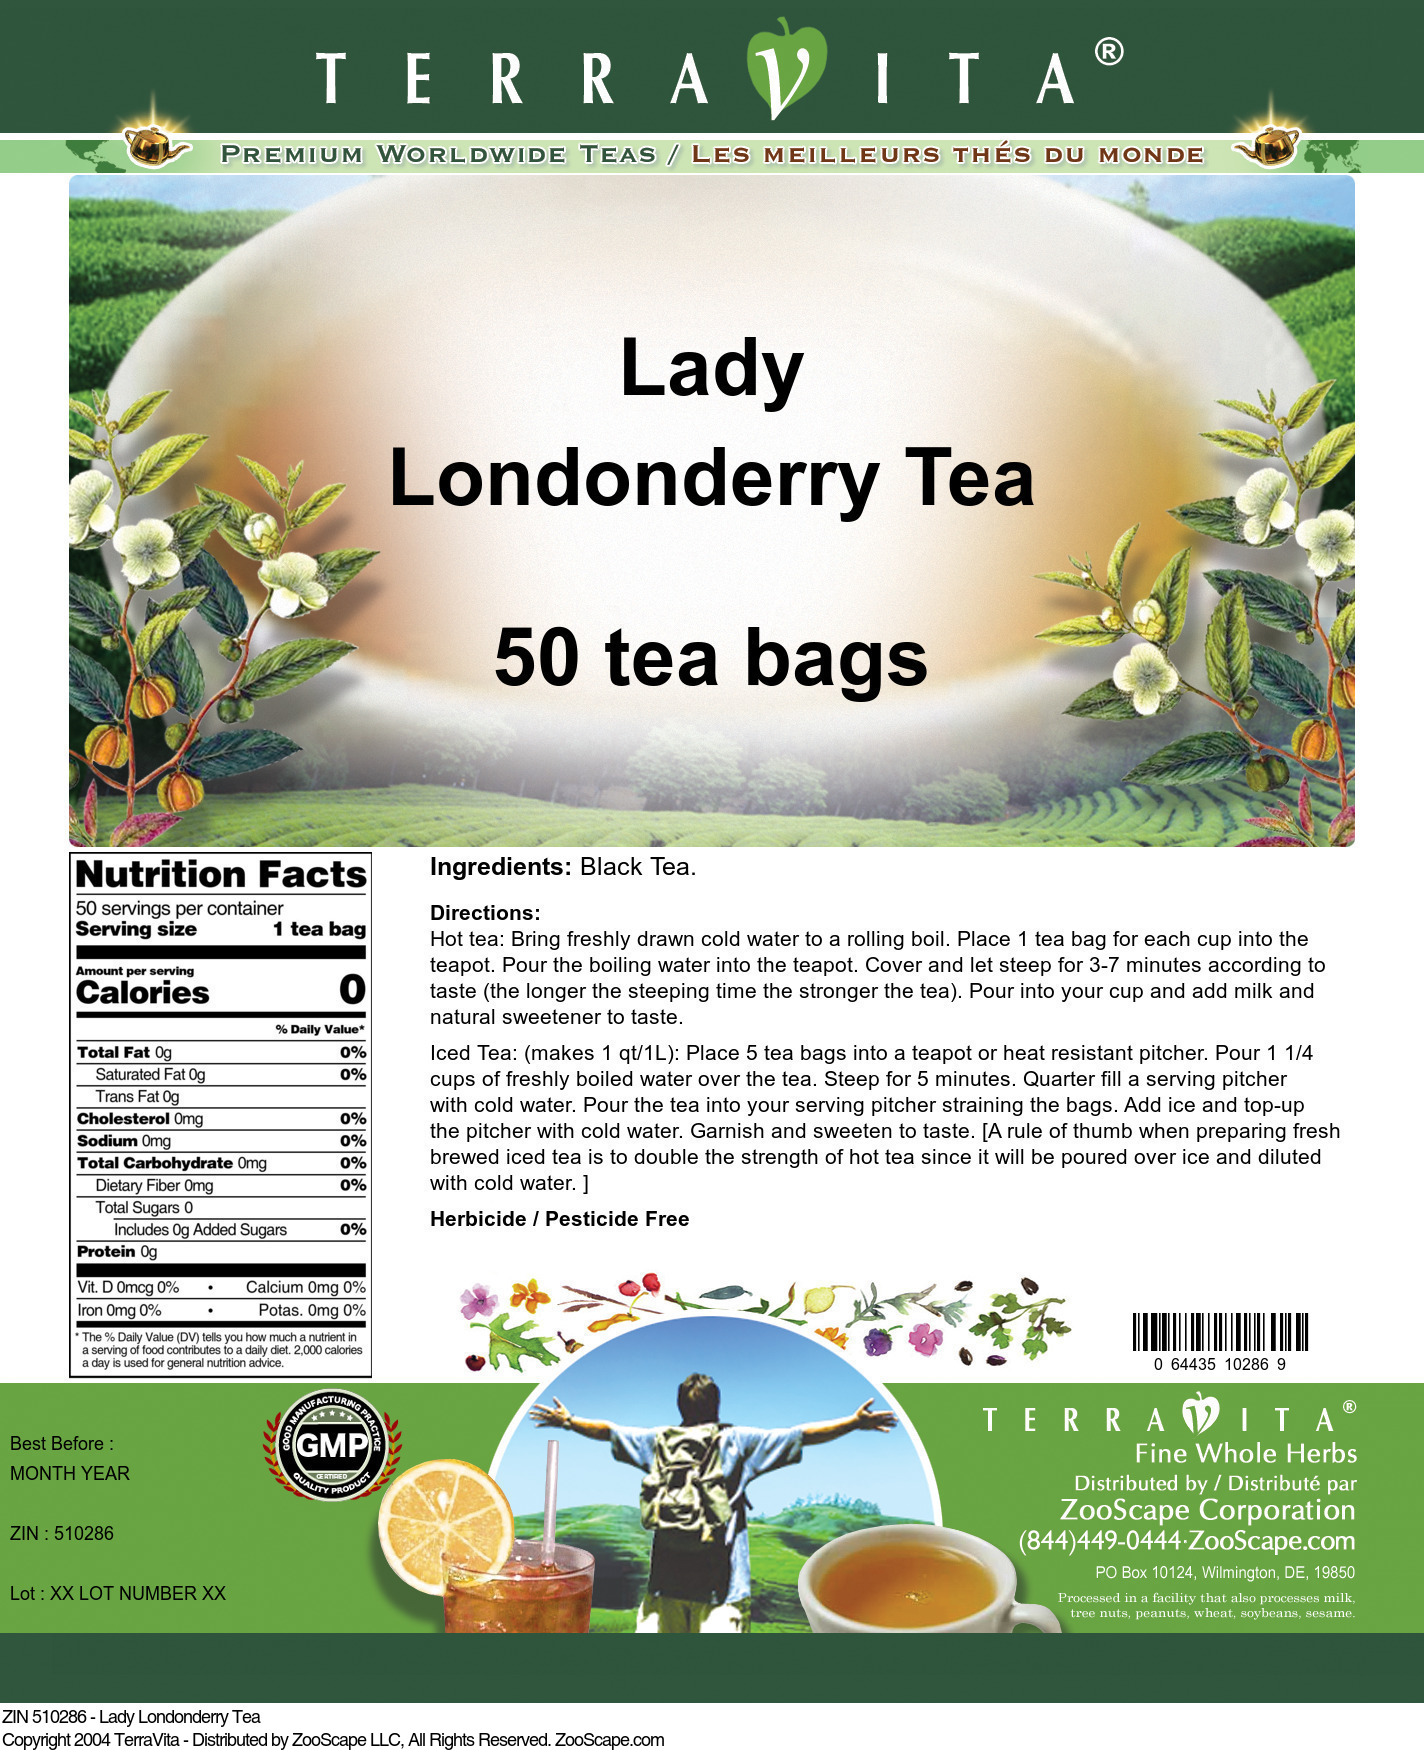 Lady Londonderry